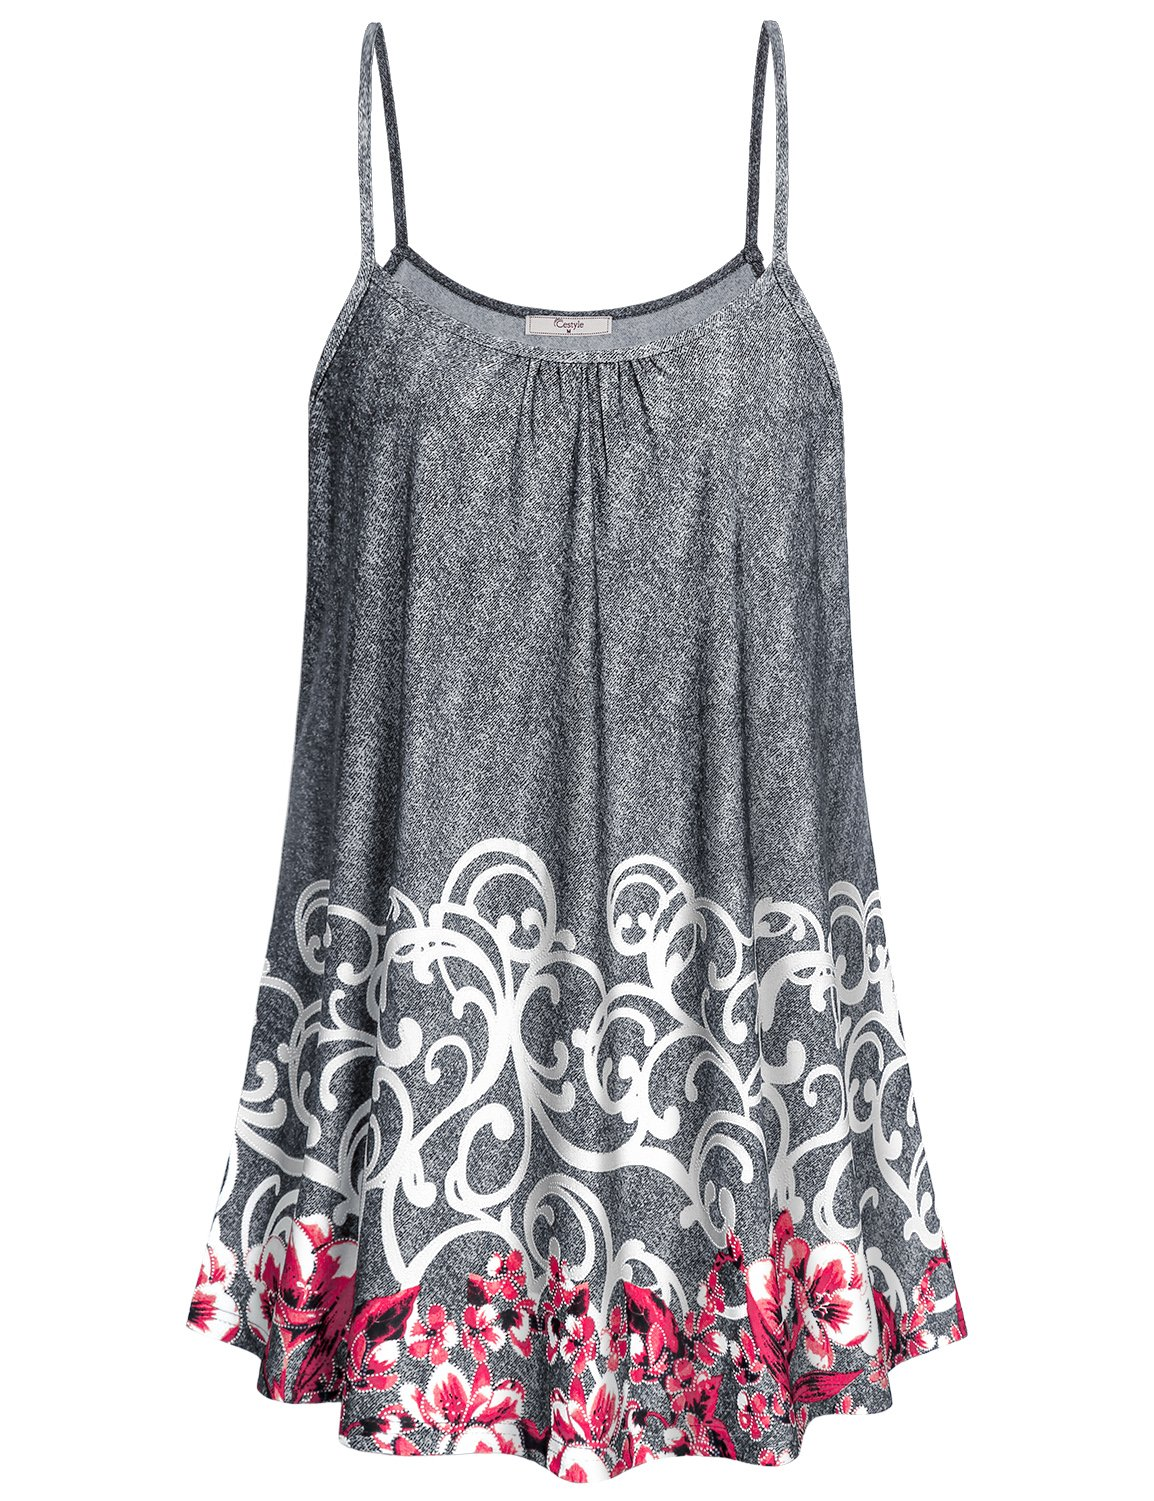 Cestyle Womens Camisoles and Tanks, Woman's Summer